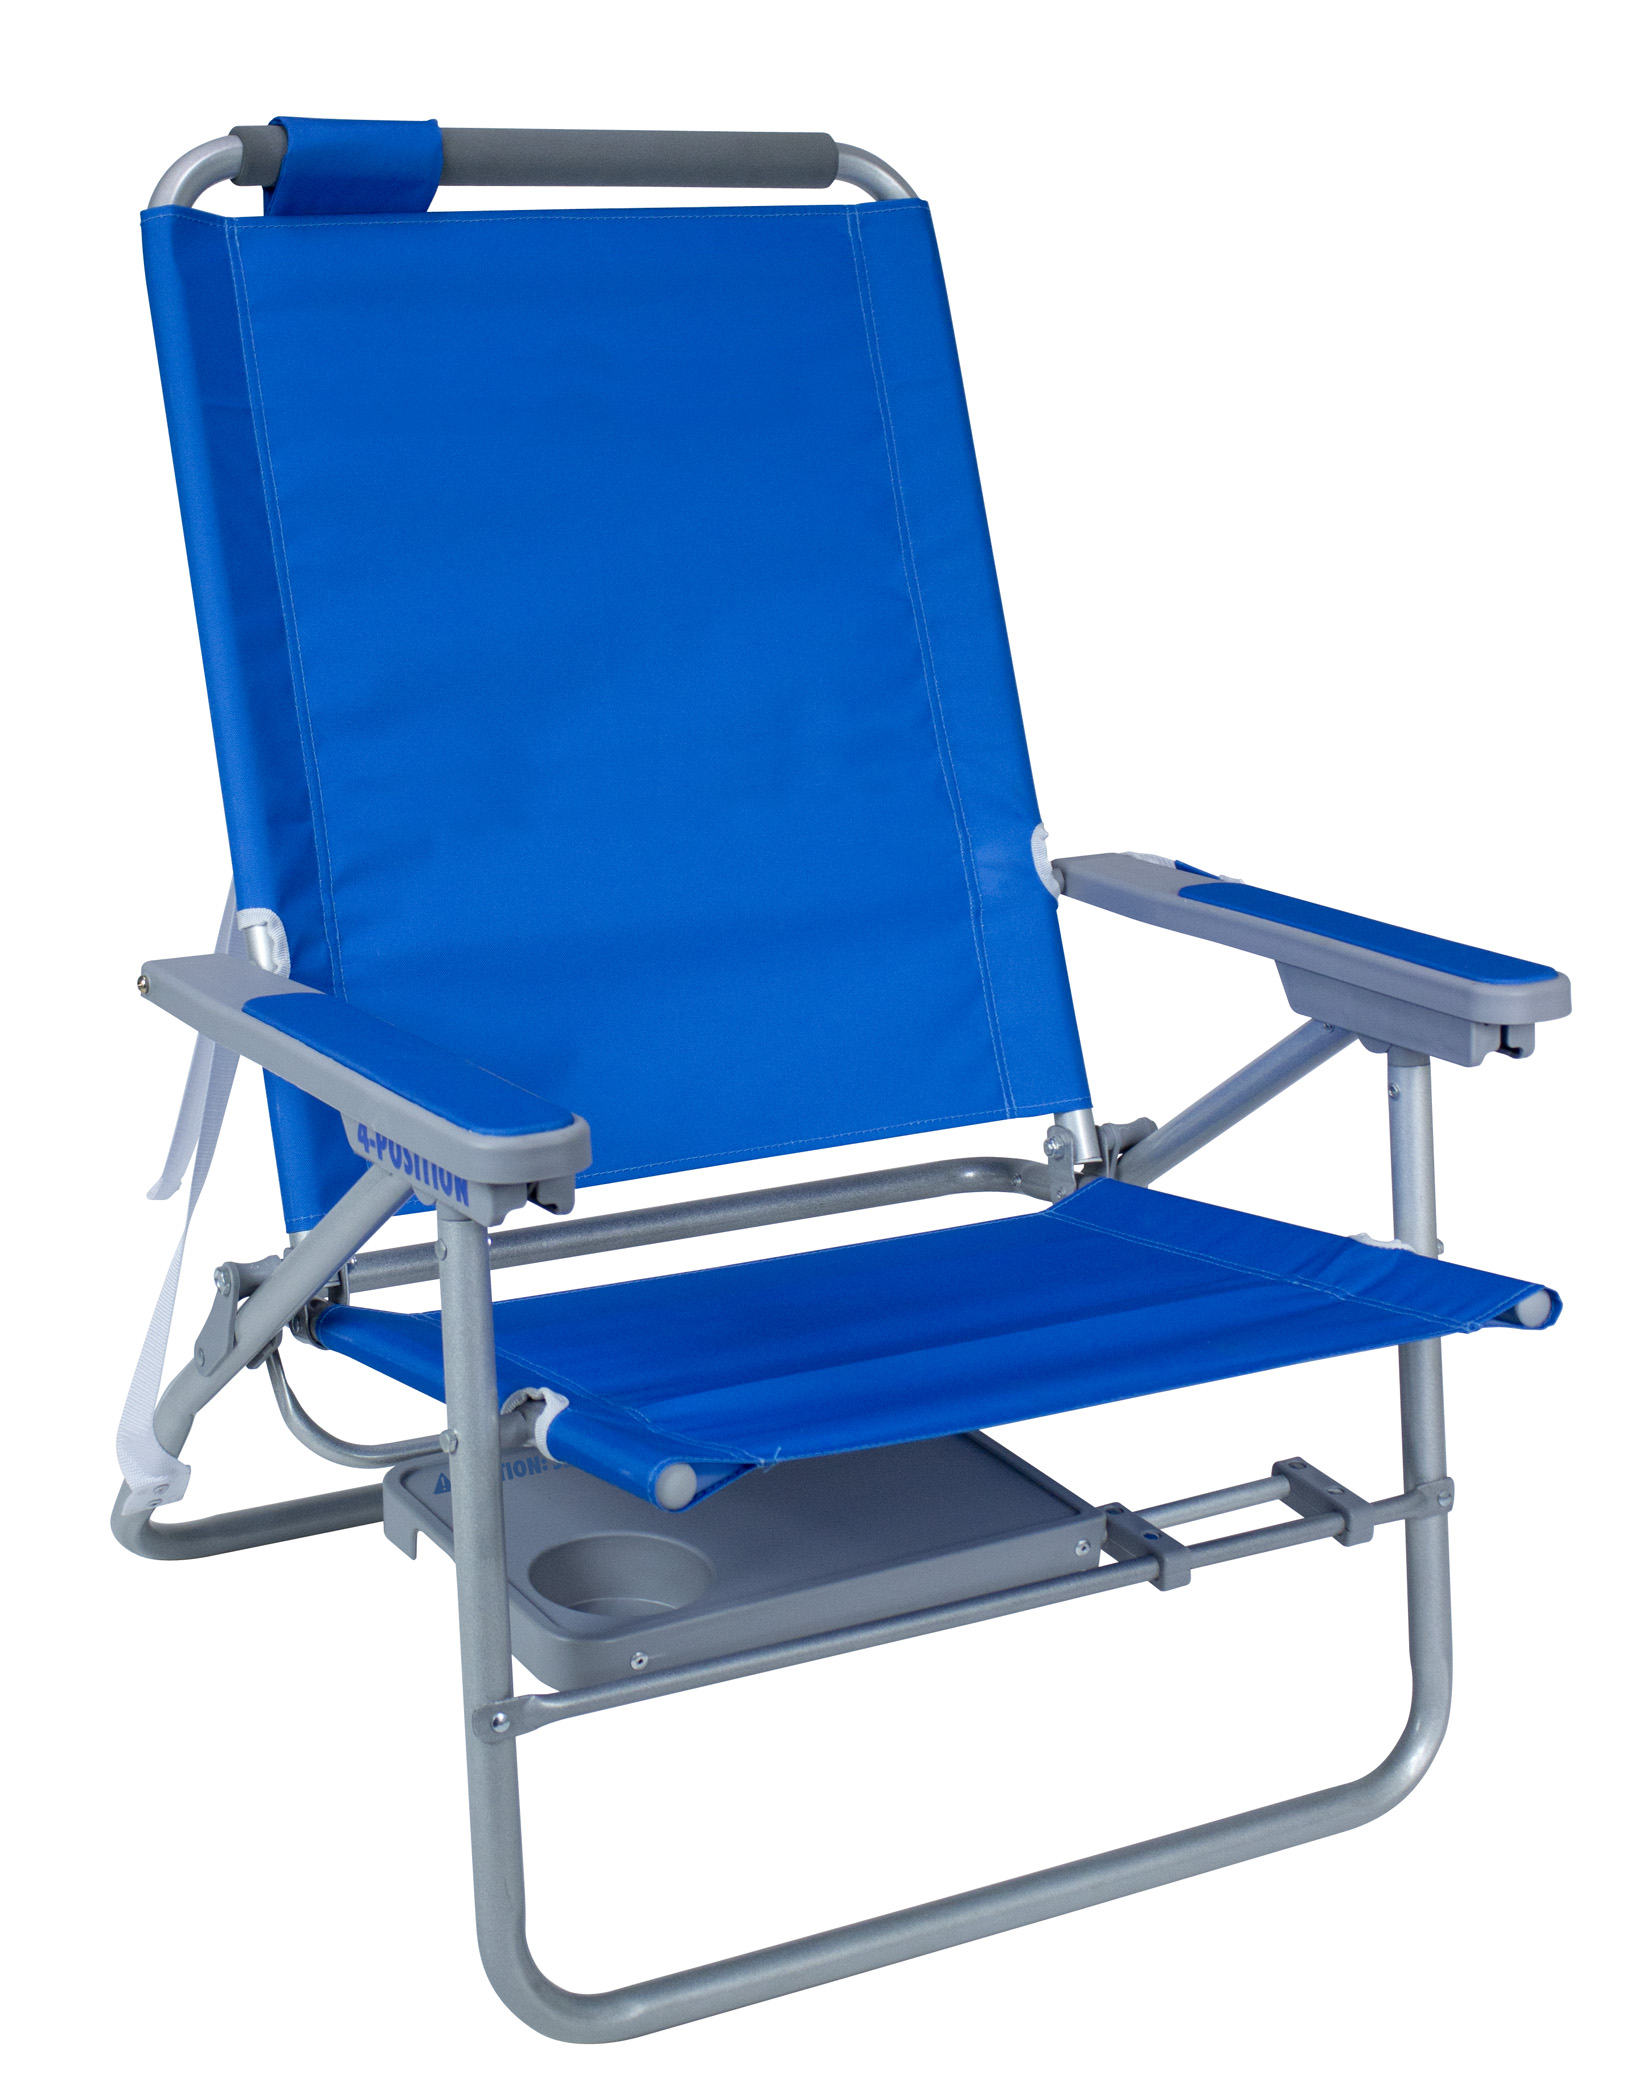 directors chair covers big w stair lift rental imprinted surf with side table by gci waterside